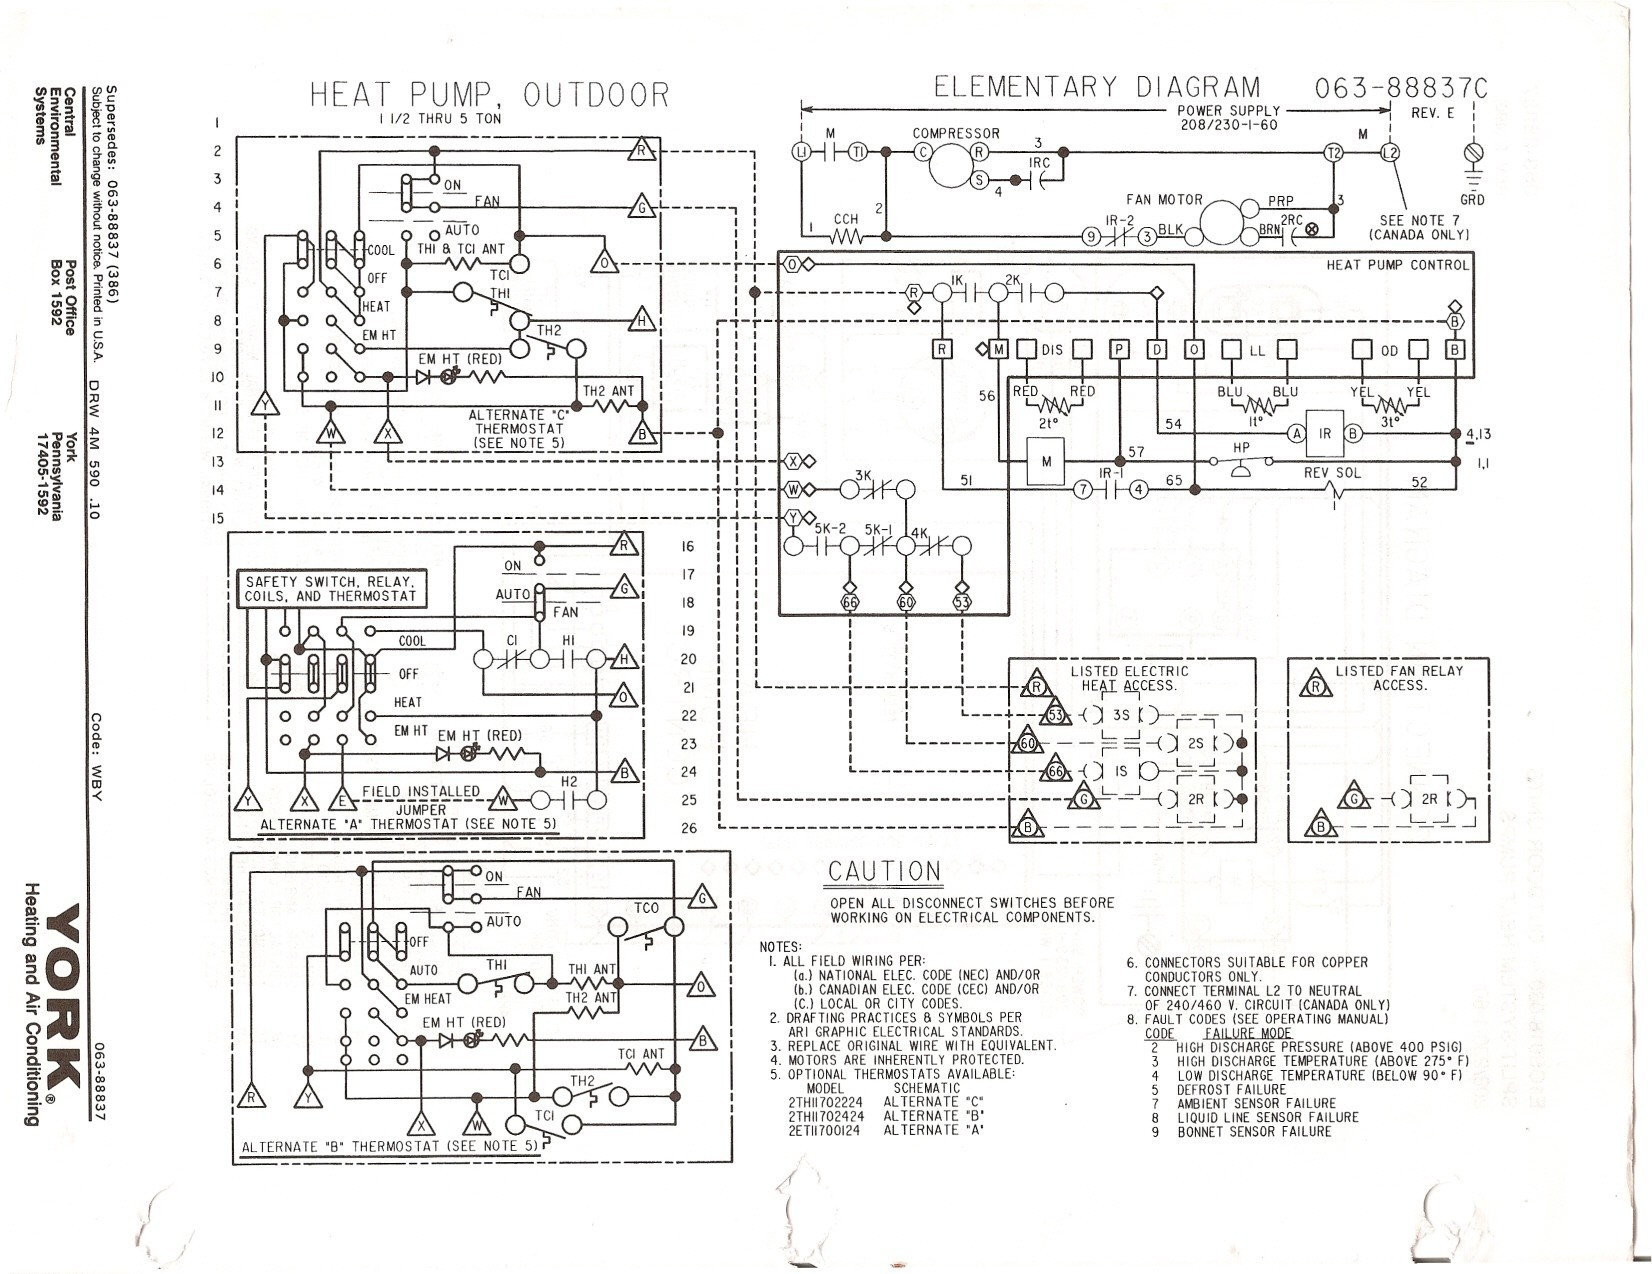 Goodman Heat Pump Thermostat Wiring Diagram New Generous York Air - Goodman Heat Pump Wiring Diagram